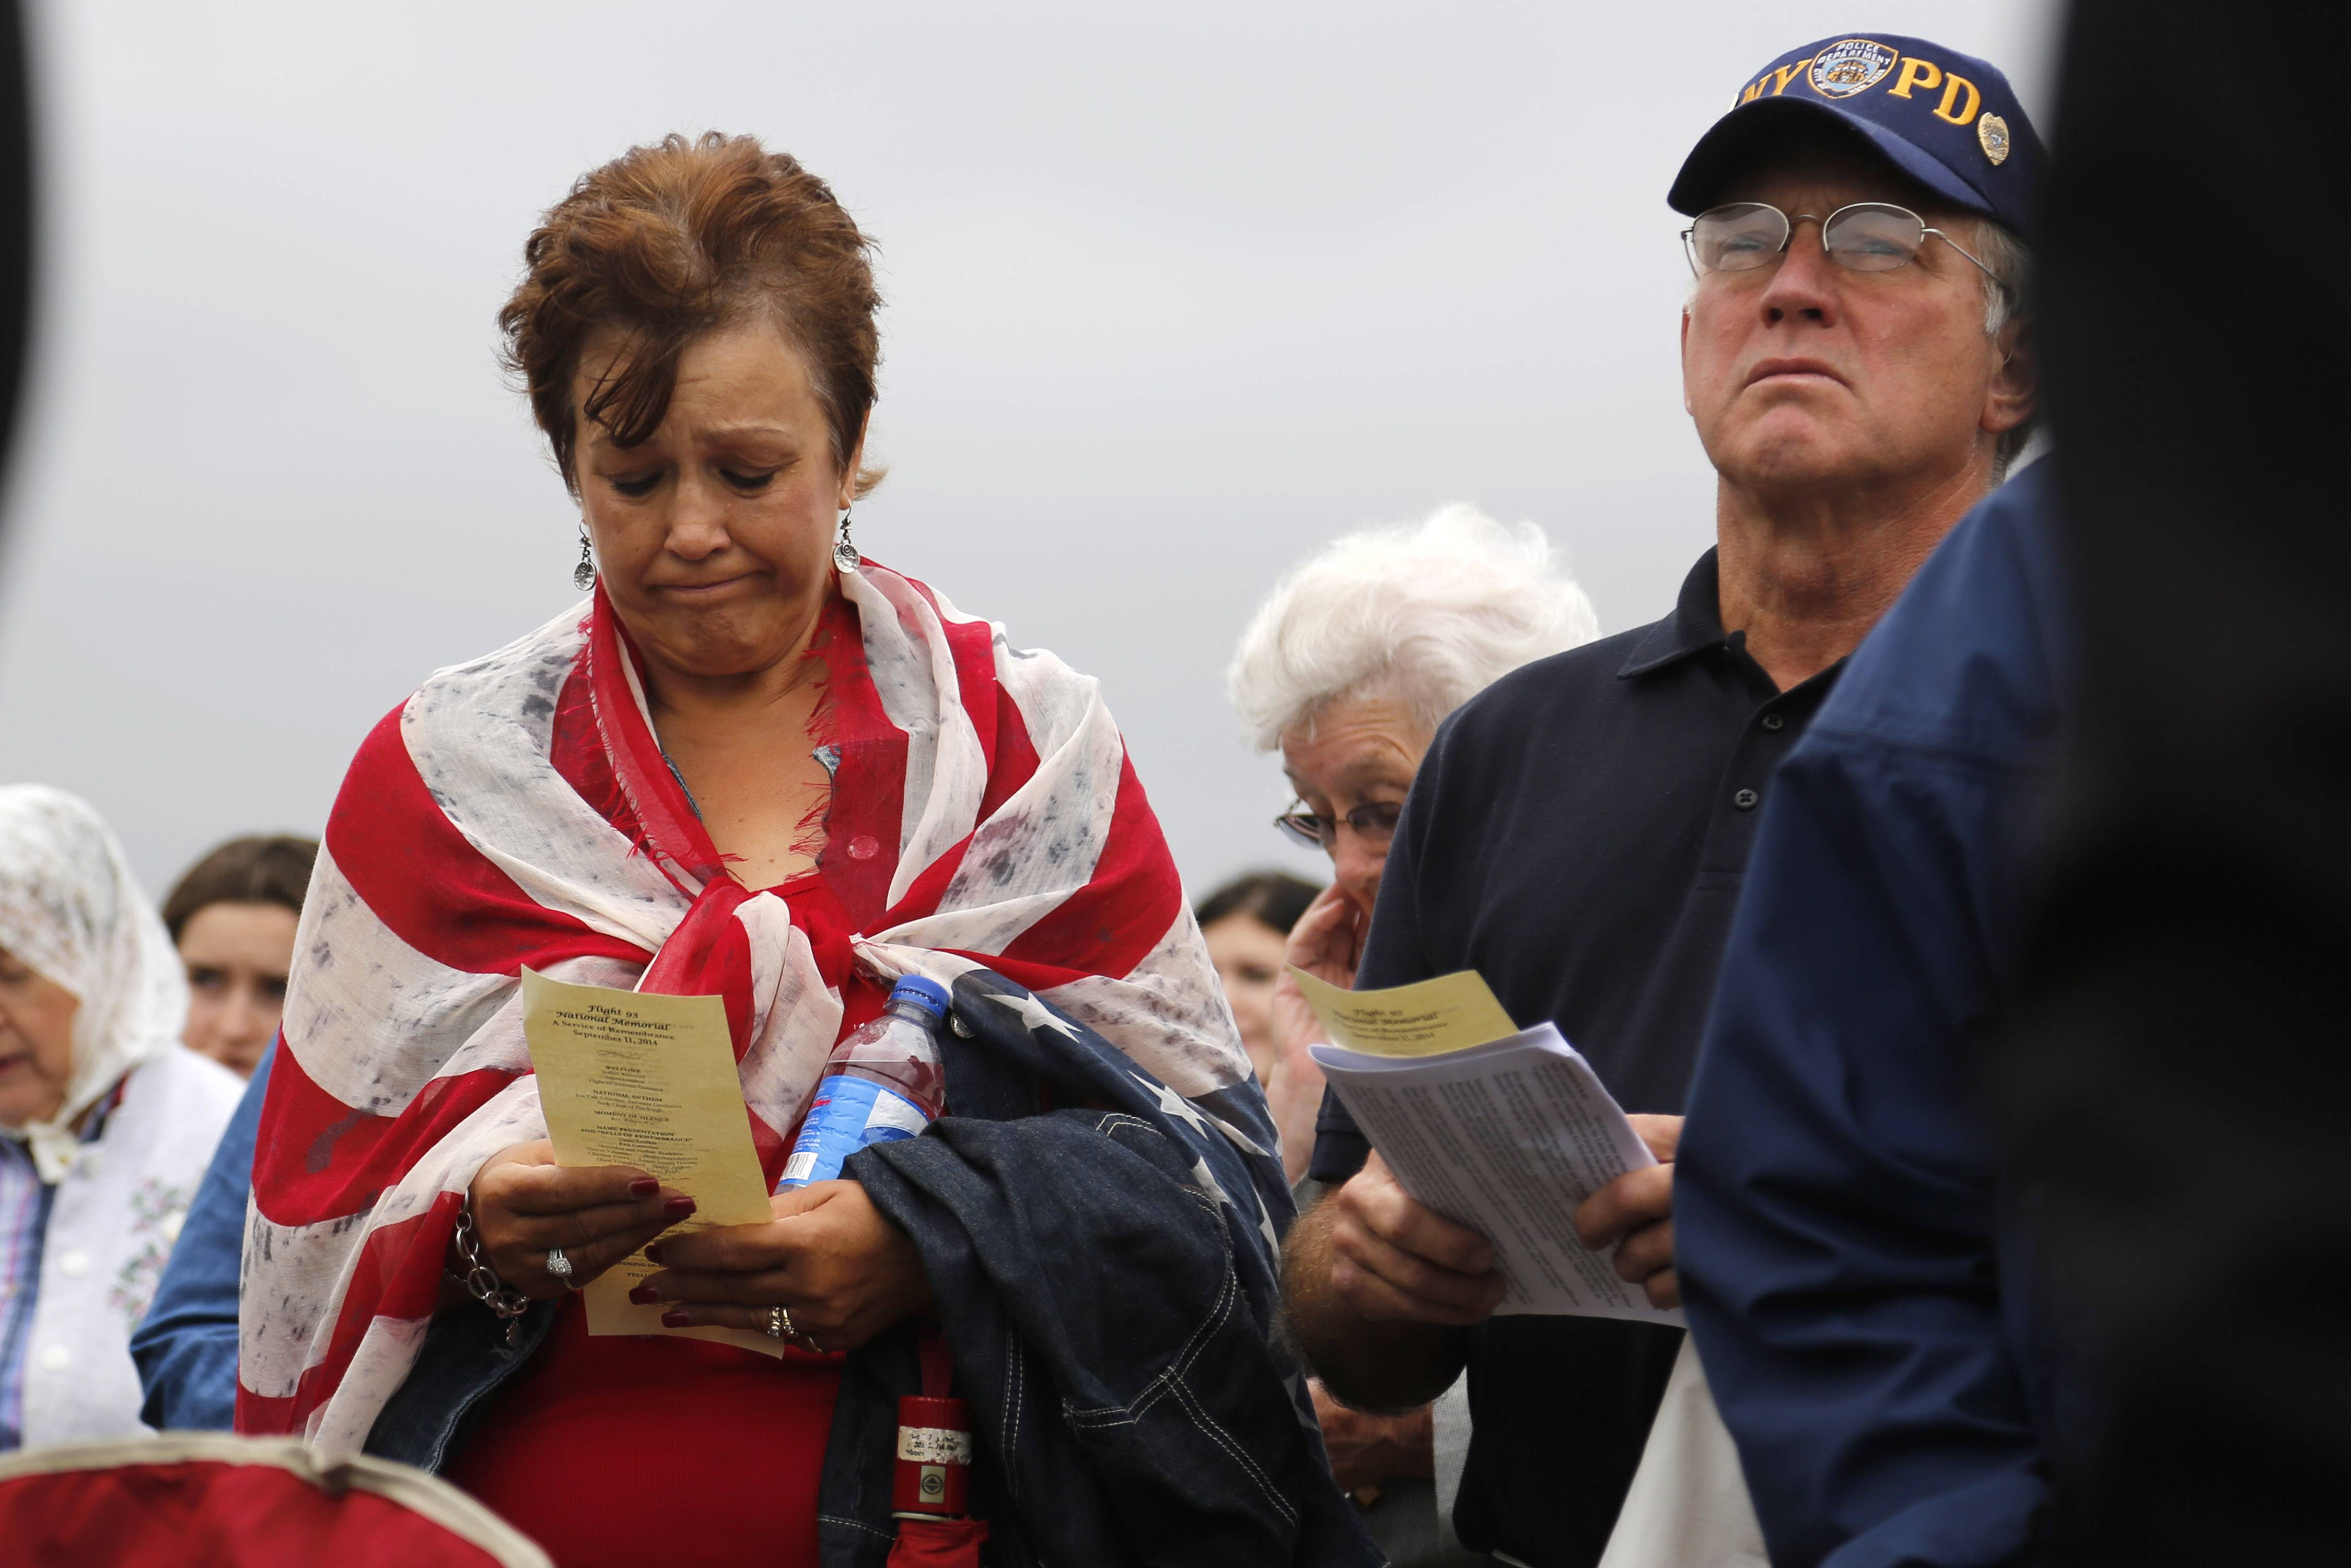 Hastert donates Capitol flag to Flight 93 memorial